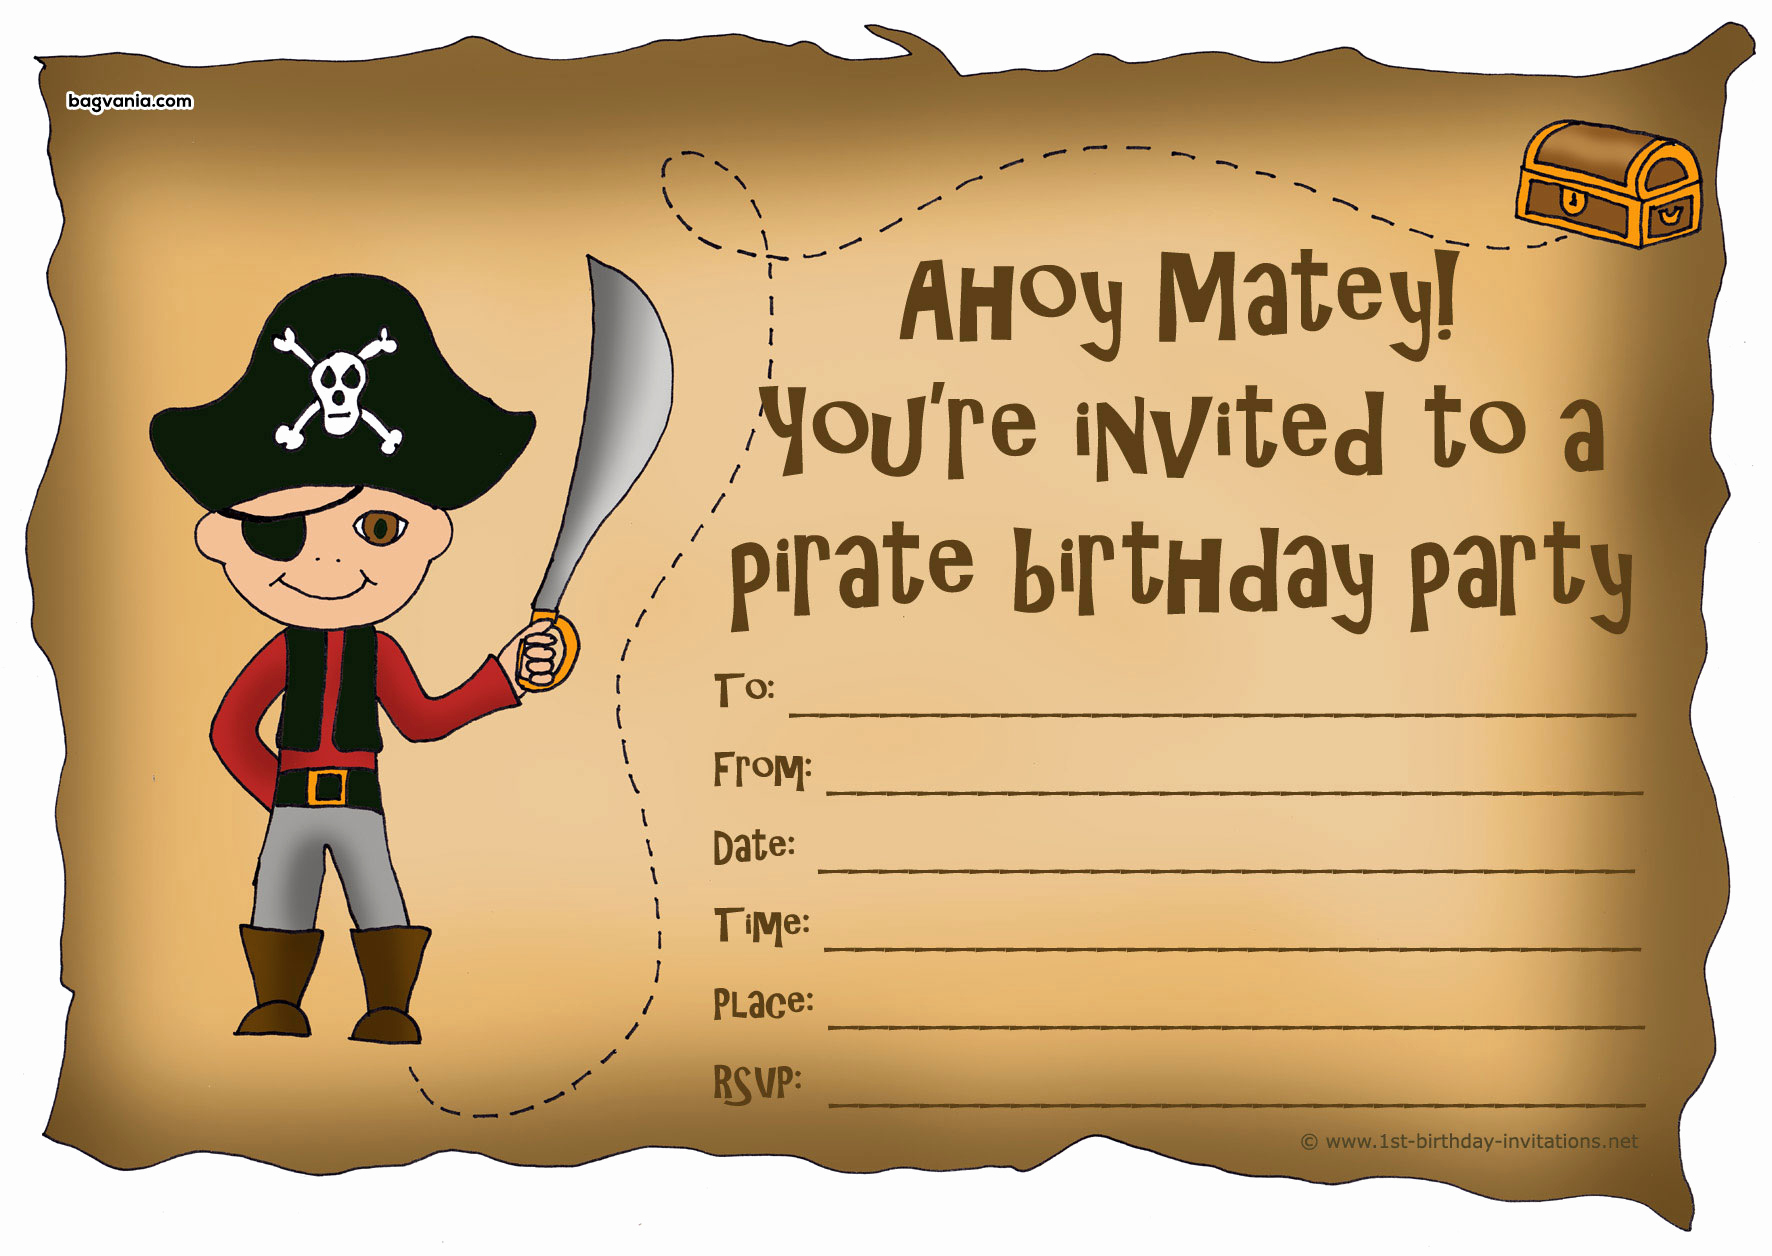 Pirate Party Invitation Templates Beautiful Pirates Birthday Invitations – Free Printable Birthday